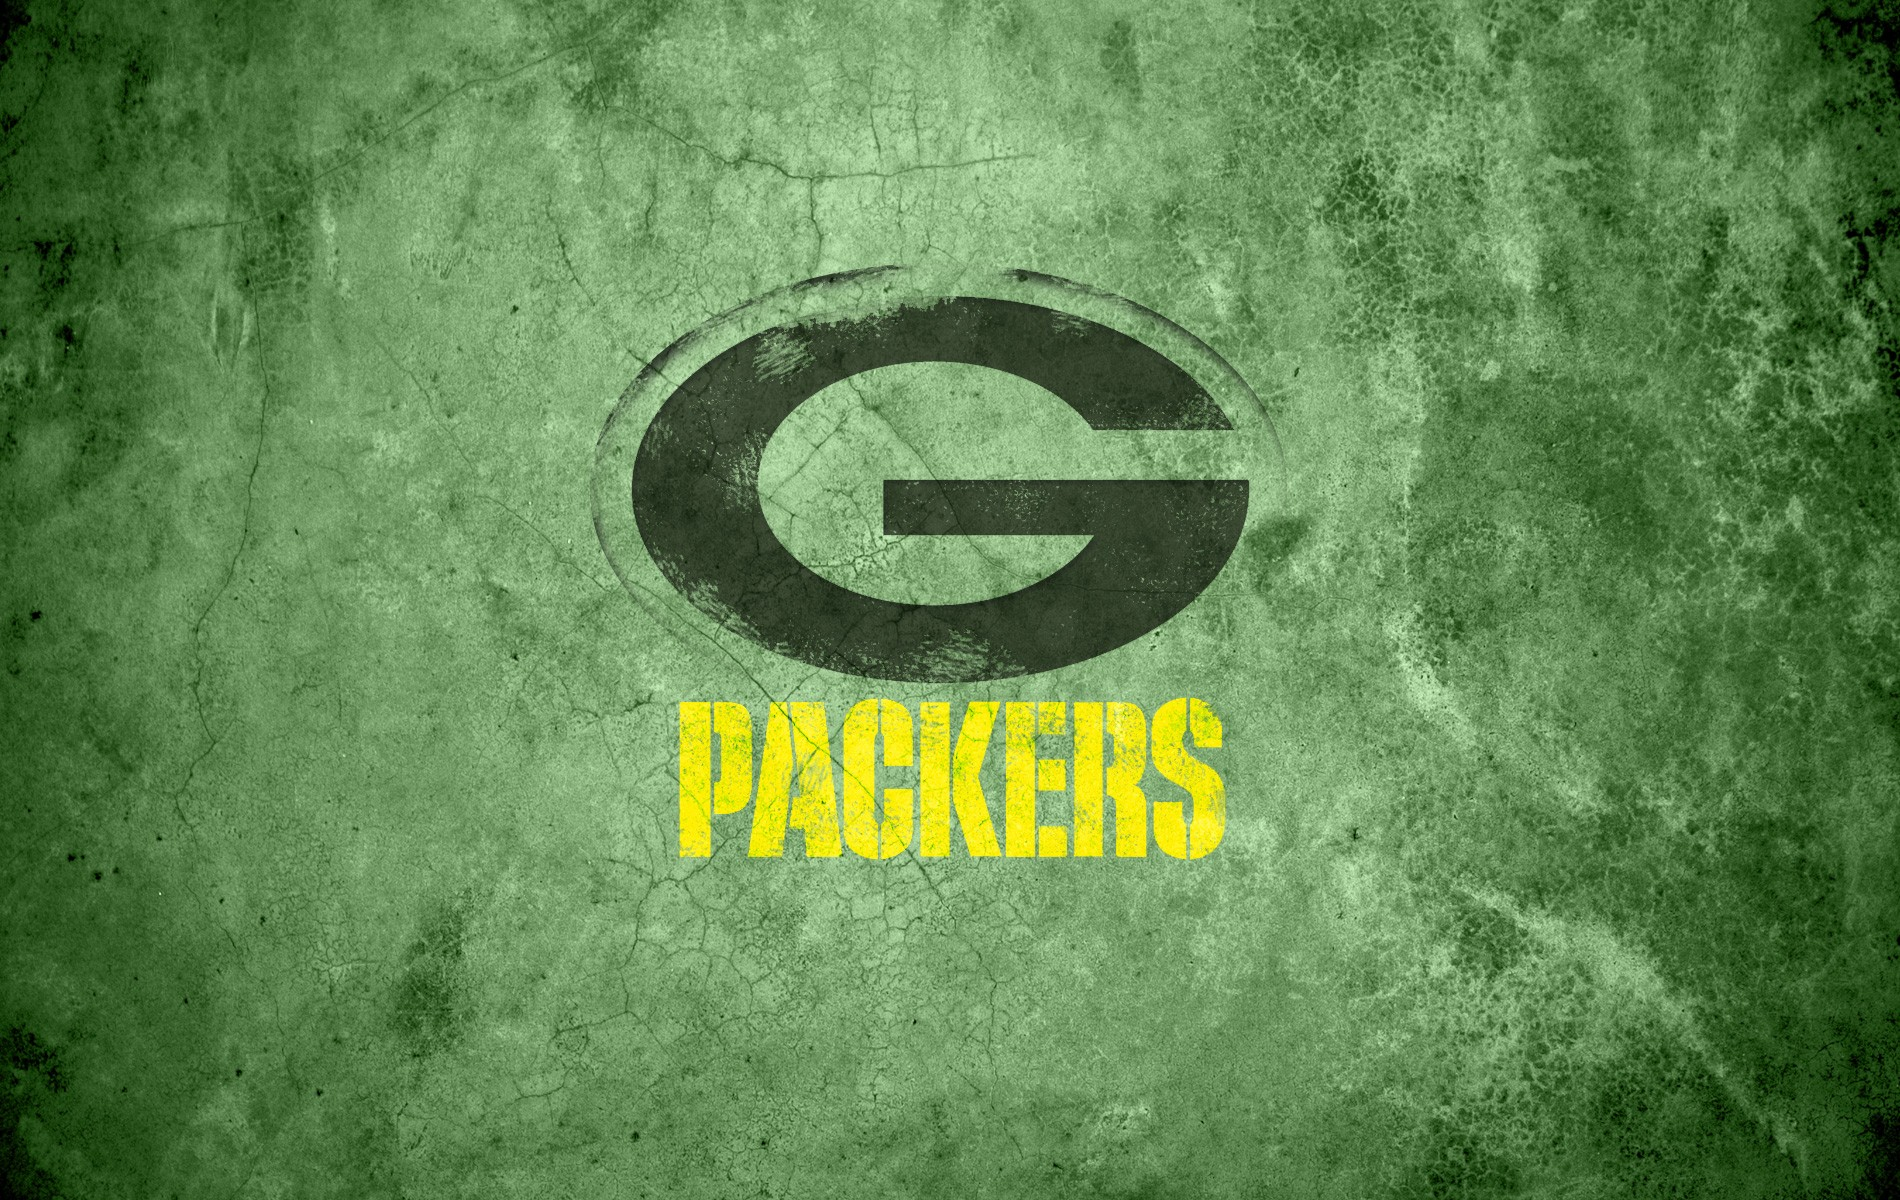 greenbay packers wallpaper hd